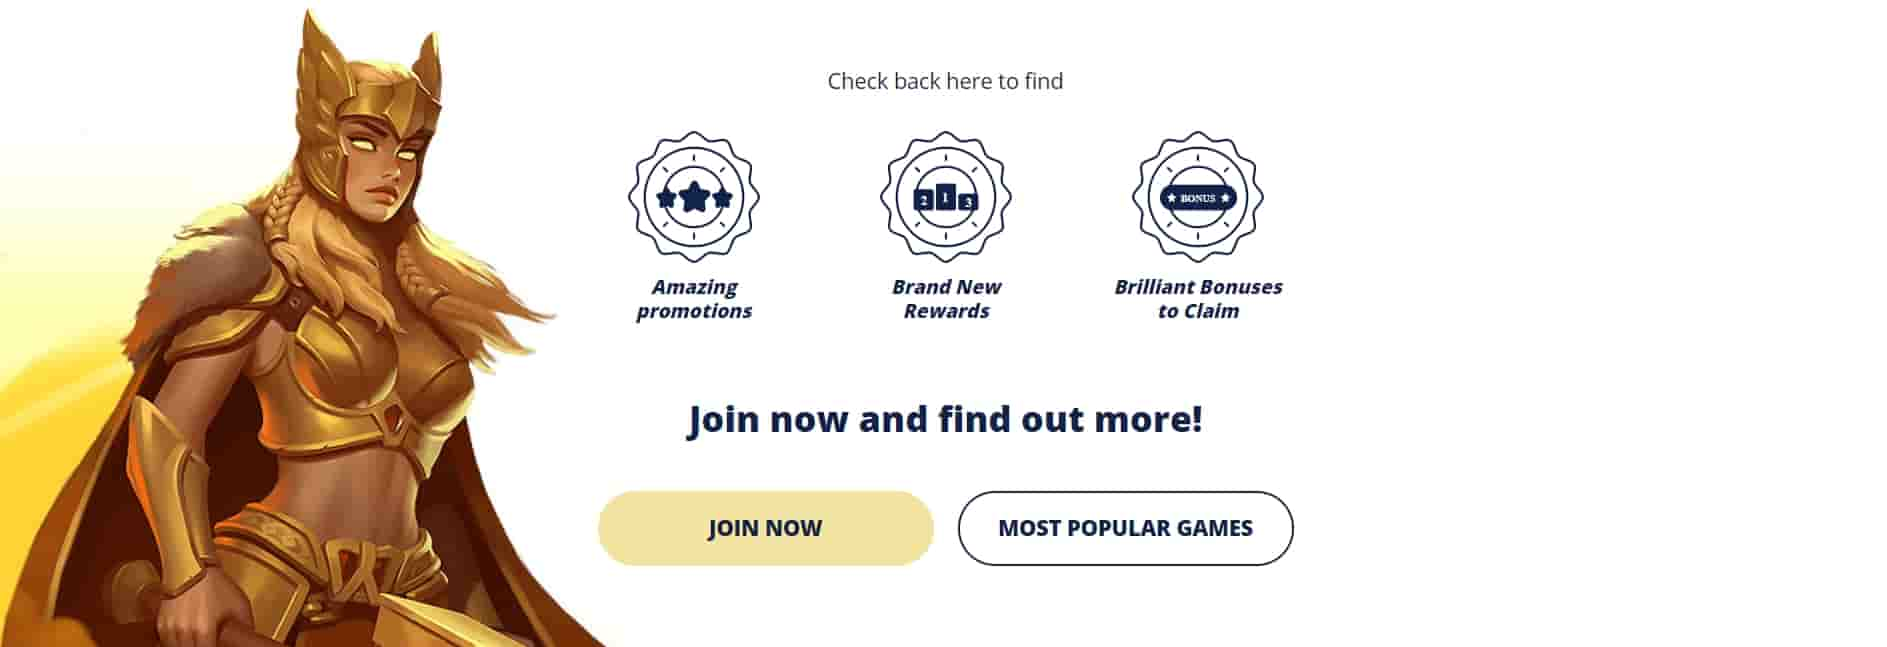 Casino Room online promotions